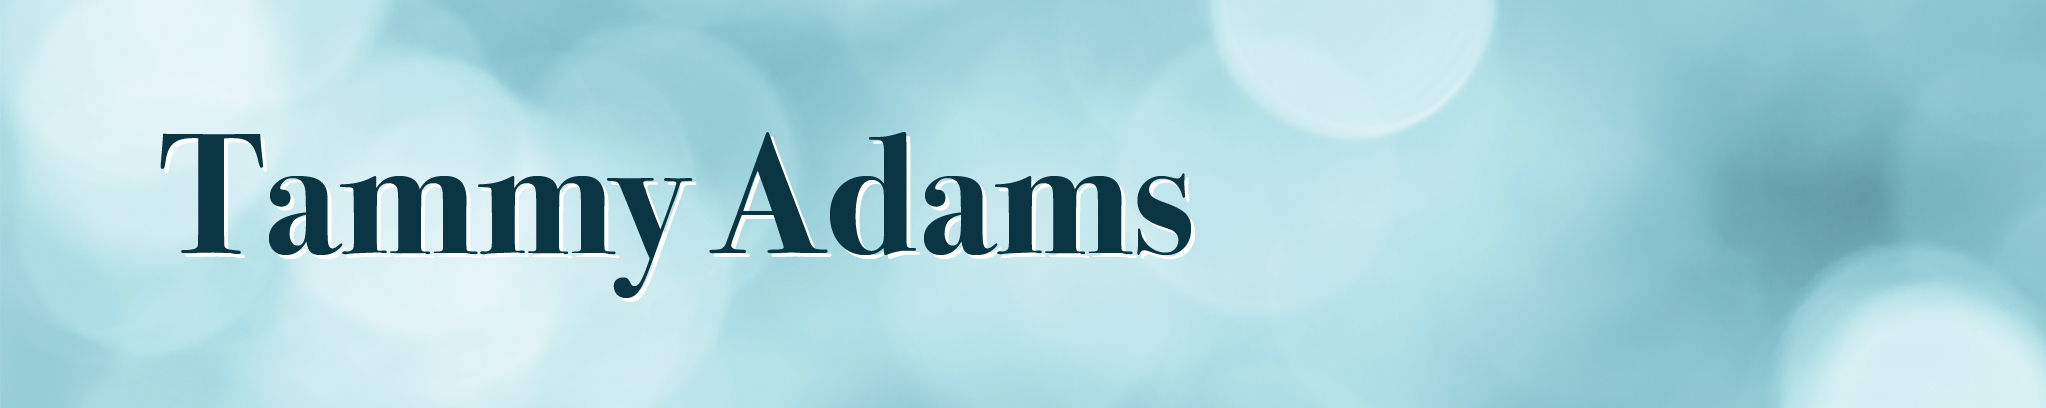 Tammy Adams Grief Counselor and Recovery Specialist